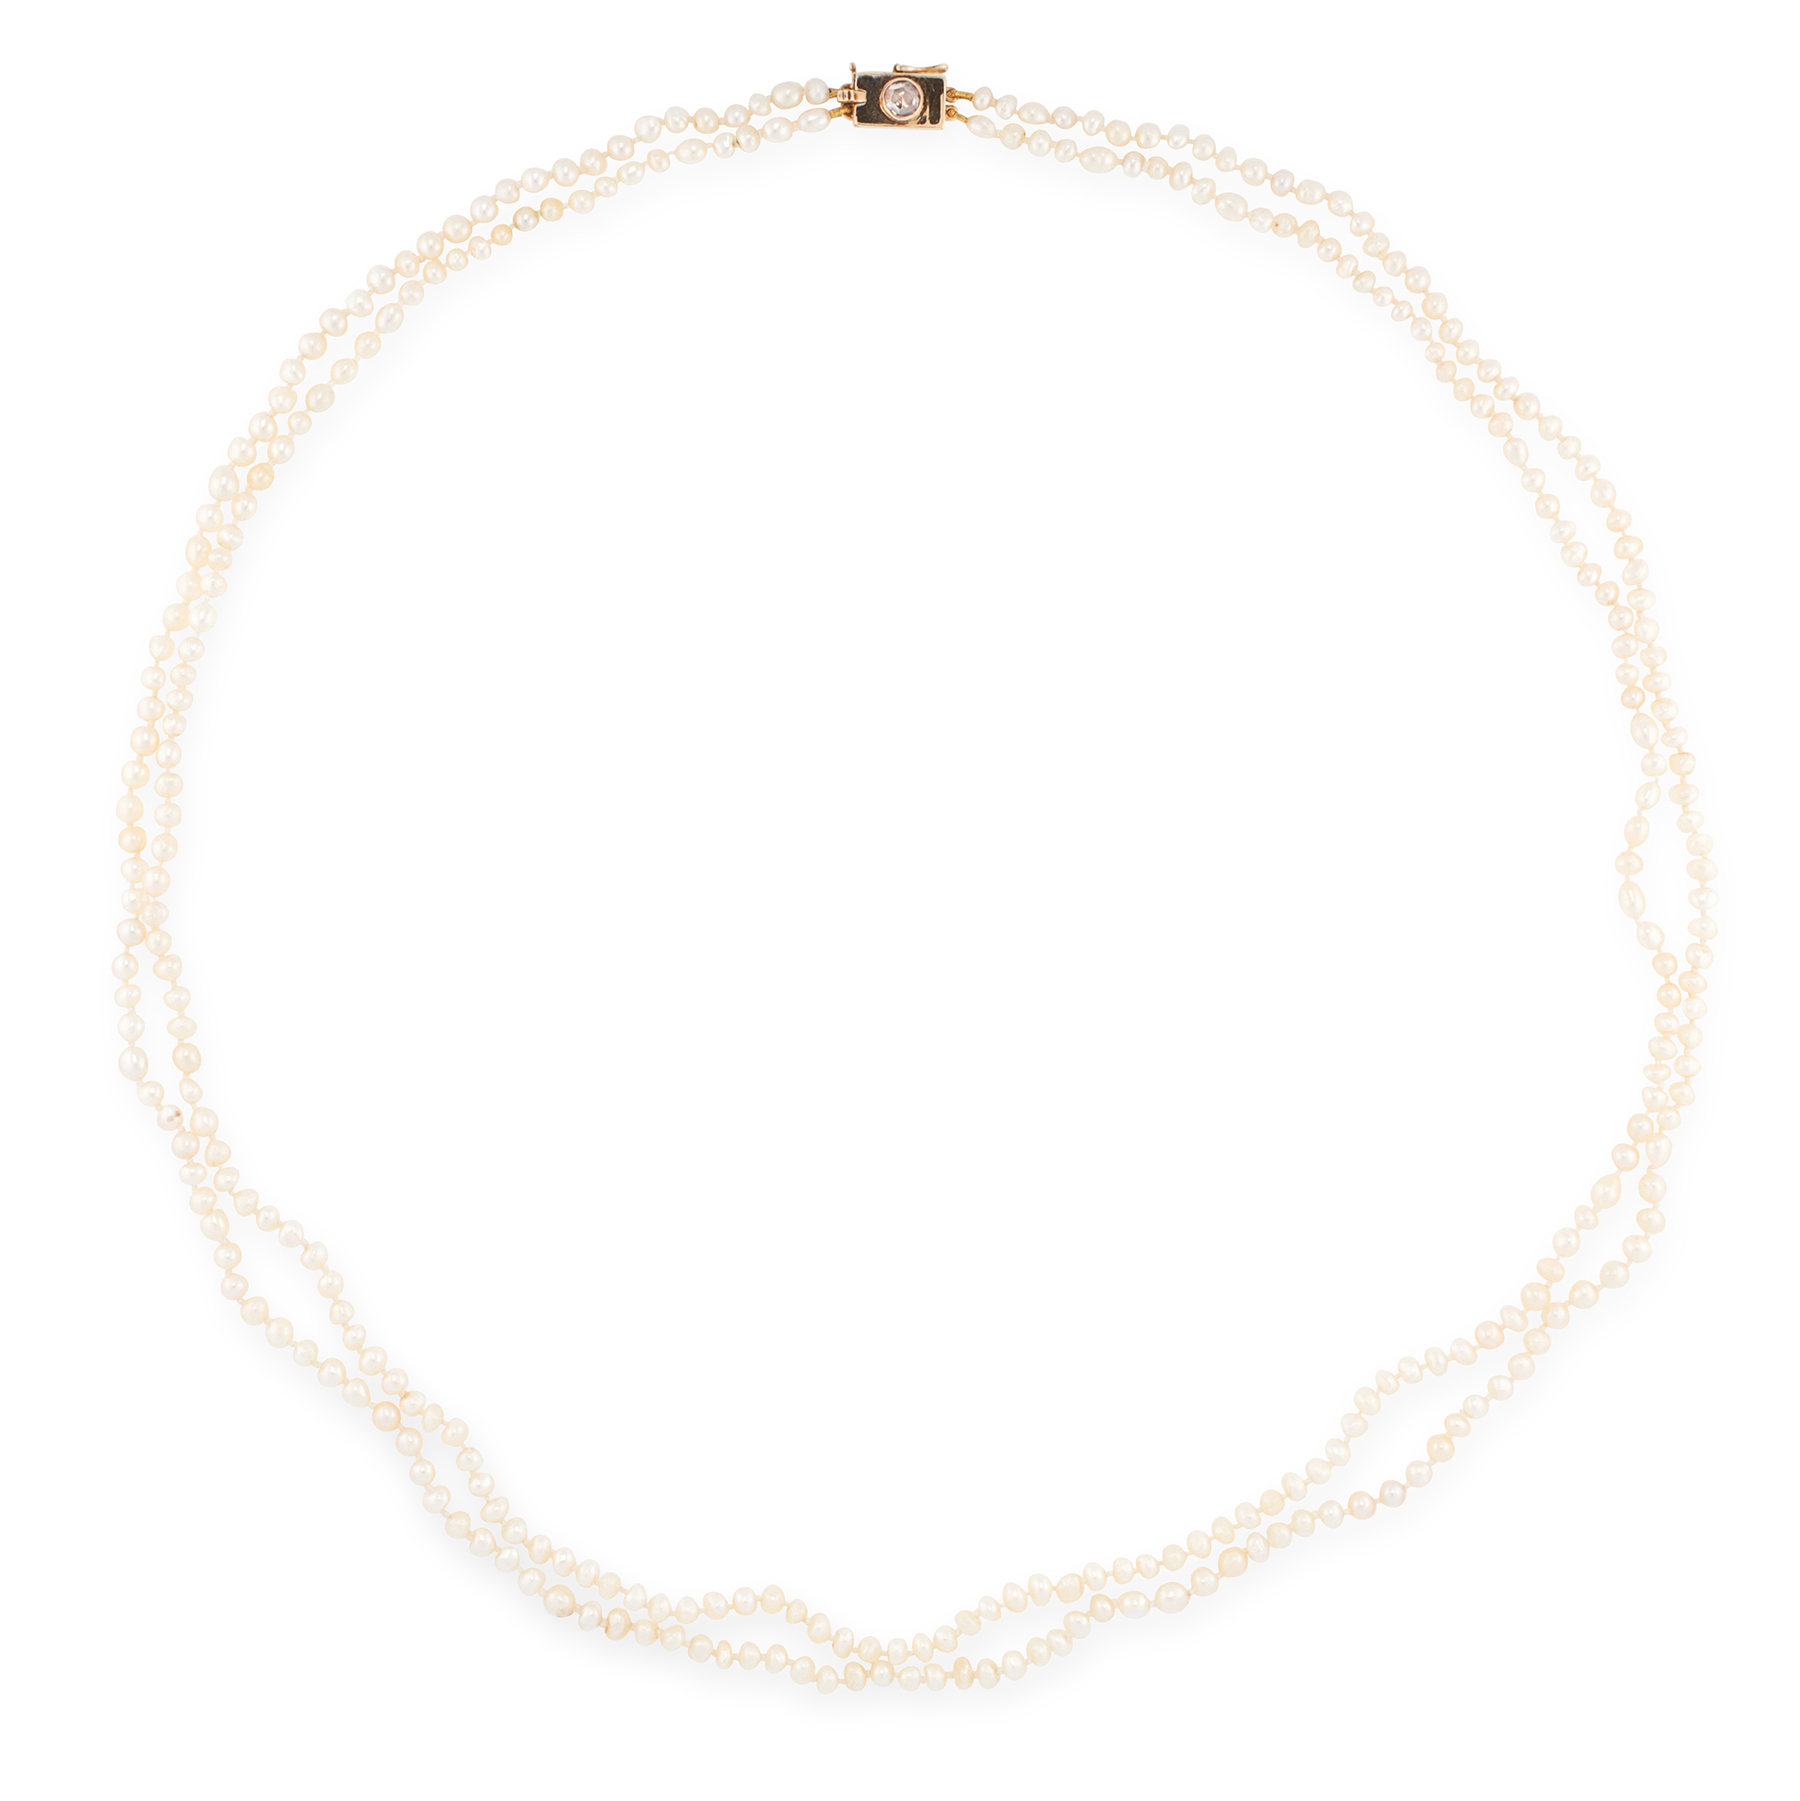 A TWO ROW NATURAL PEARL AND DIAMOND NECKLACE in yellow gold, comprising of two rows of natural